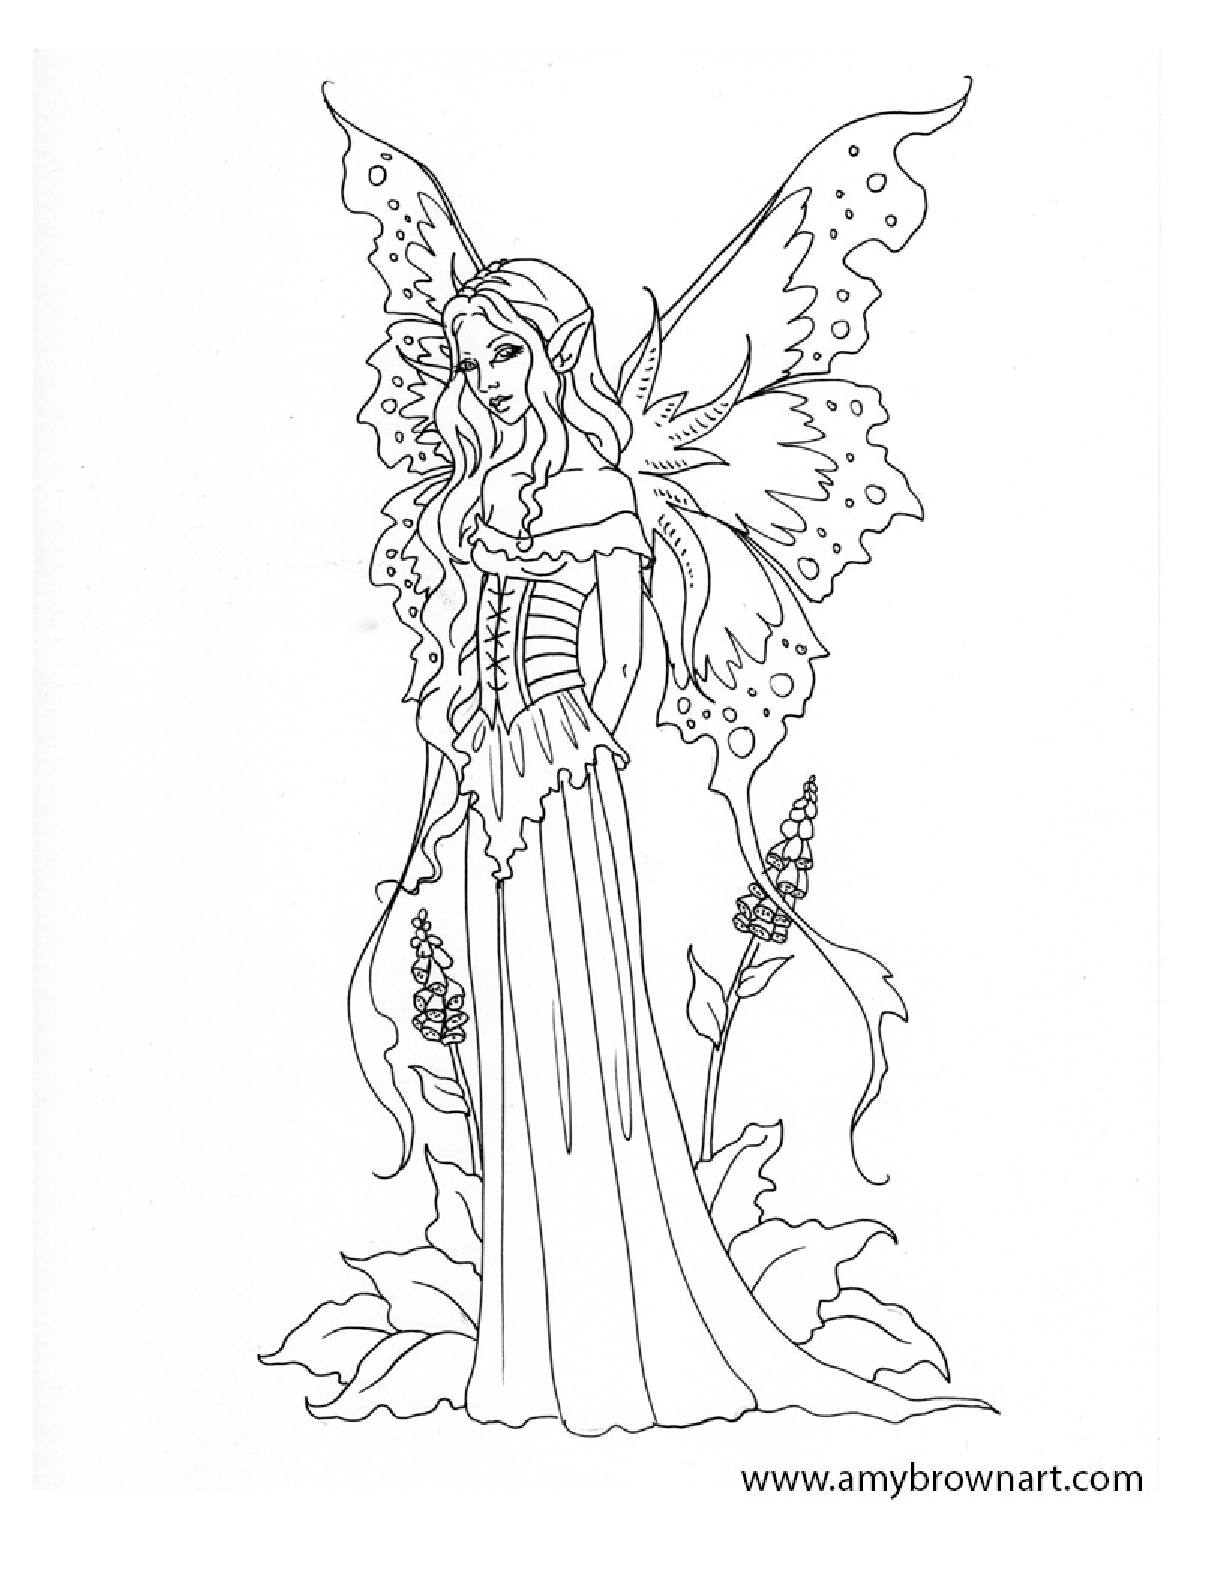 Pin By Susame Chan Kingdom Of Claires On Ideas For My Designing Fairy Coloring Pages Fairy Coloring Dragon Coloring Page